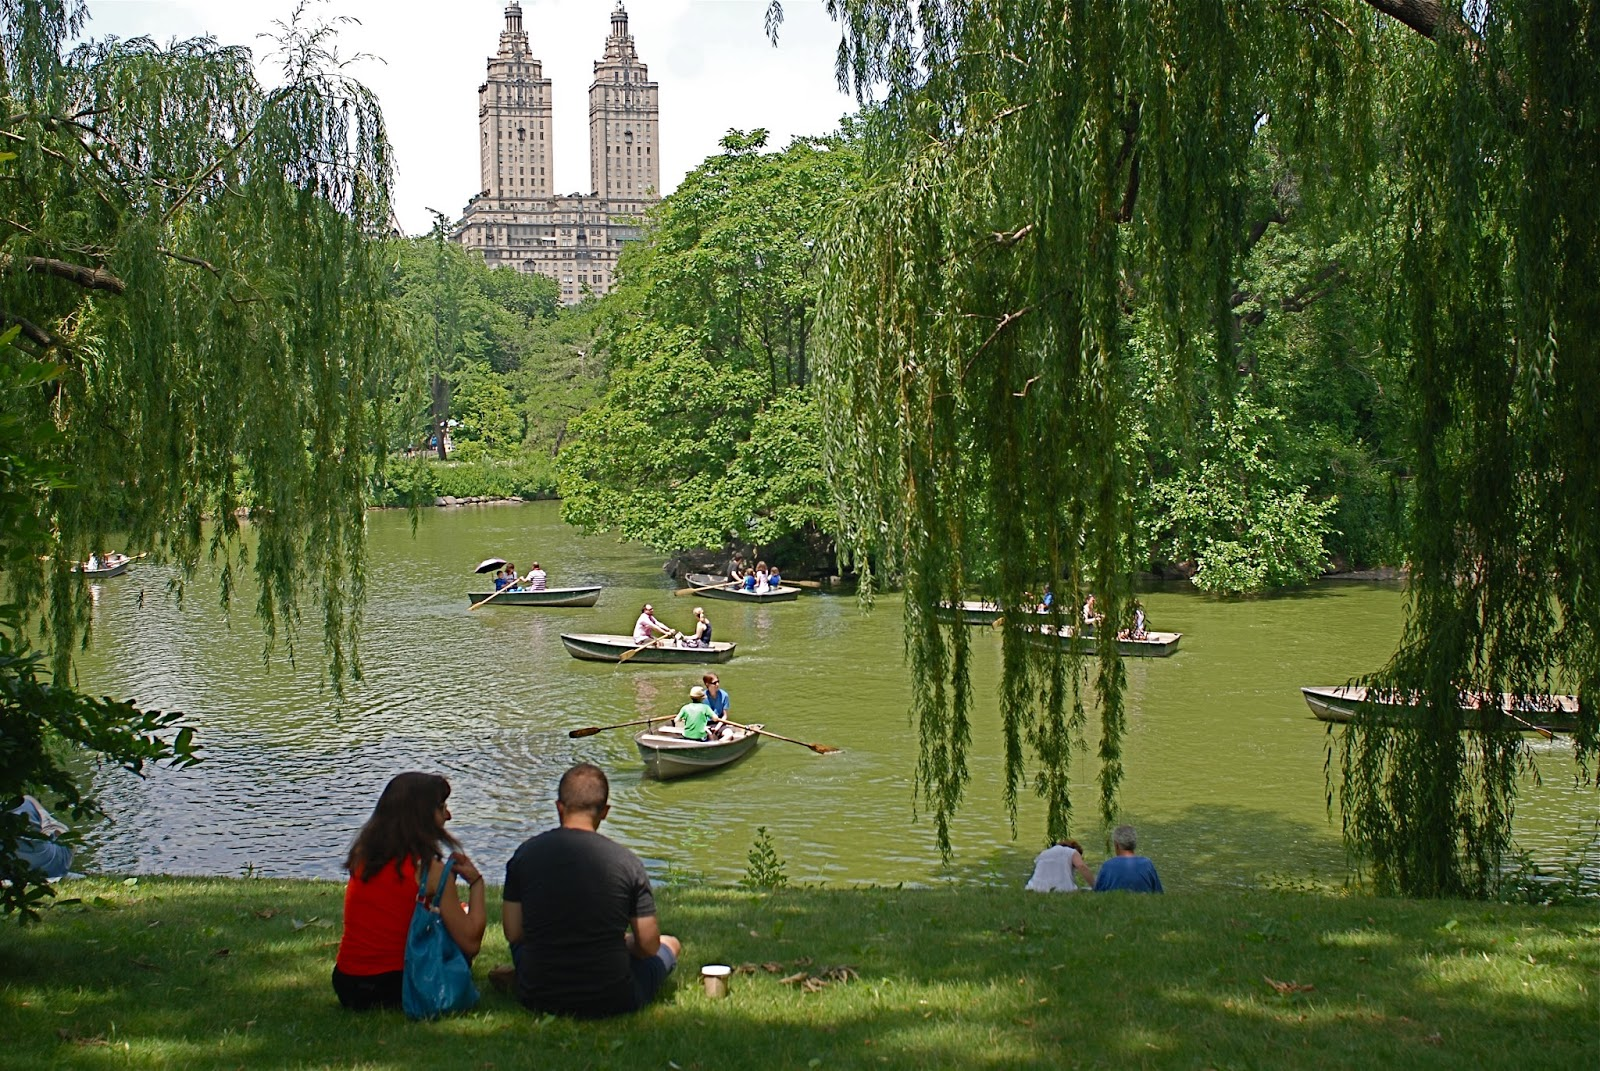 10+ Things to Do in Central Park (#5 is my personal favorite)